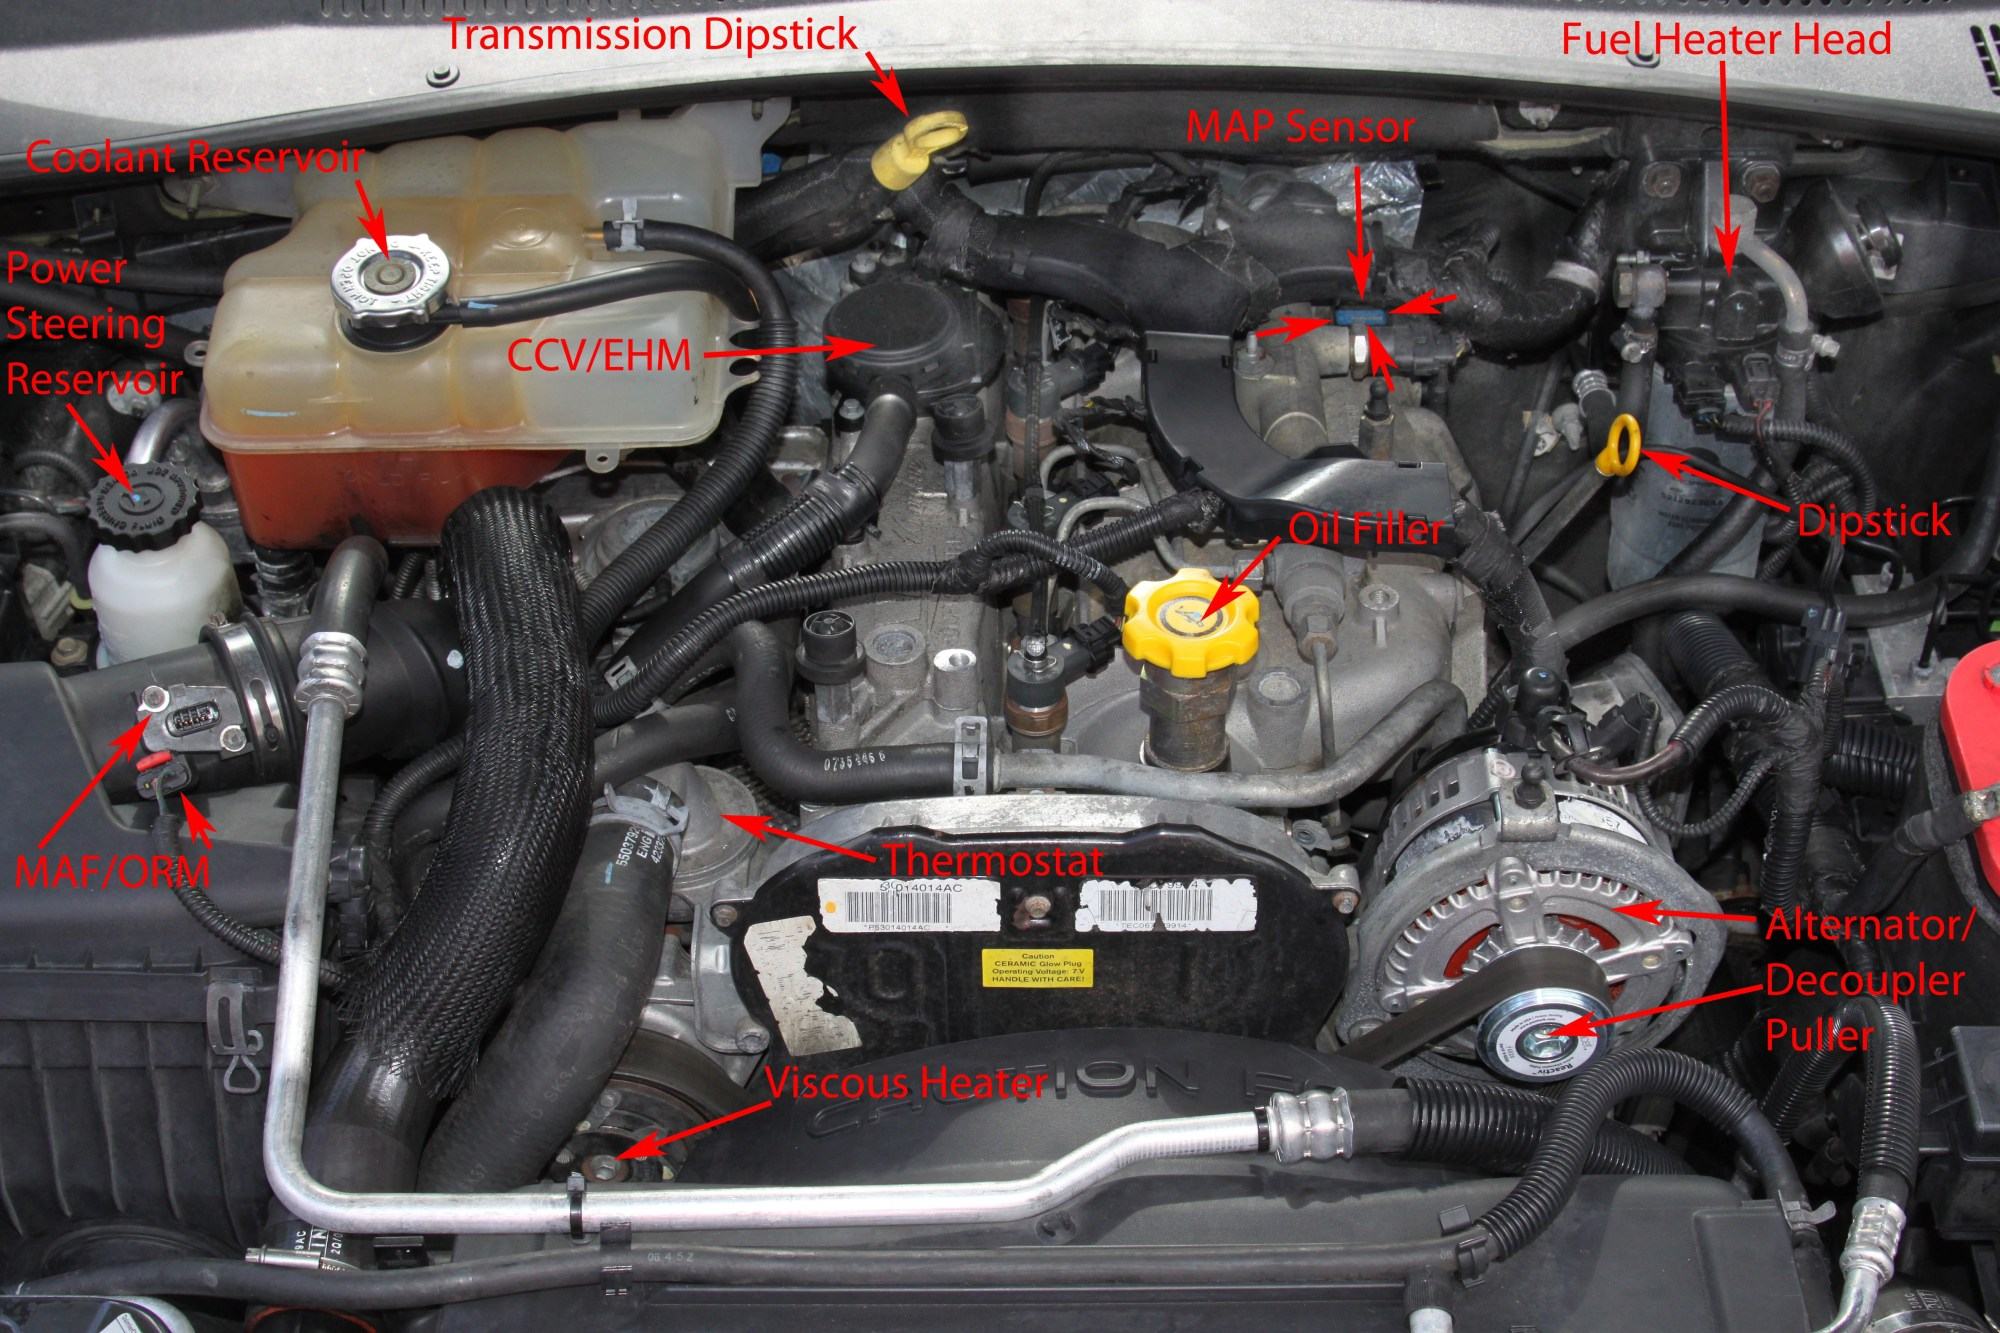 hight resolution of jeep liberty 3 7l engine diagram wiring library 1990 jeep wrangler vacuum line diagram 2002 jeep liberty vacuum system diagram